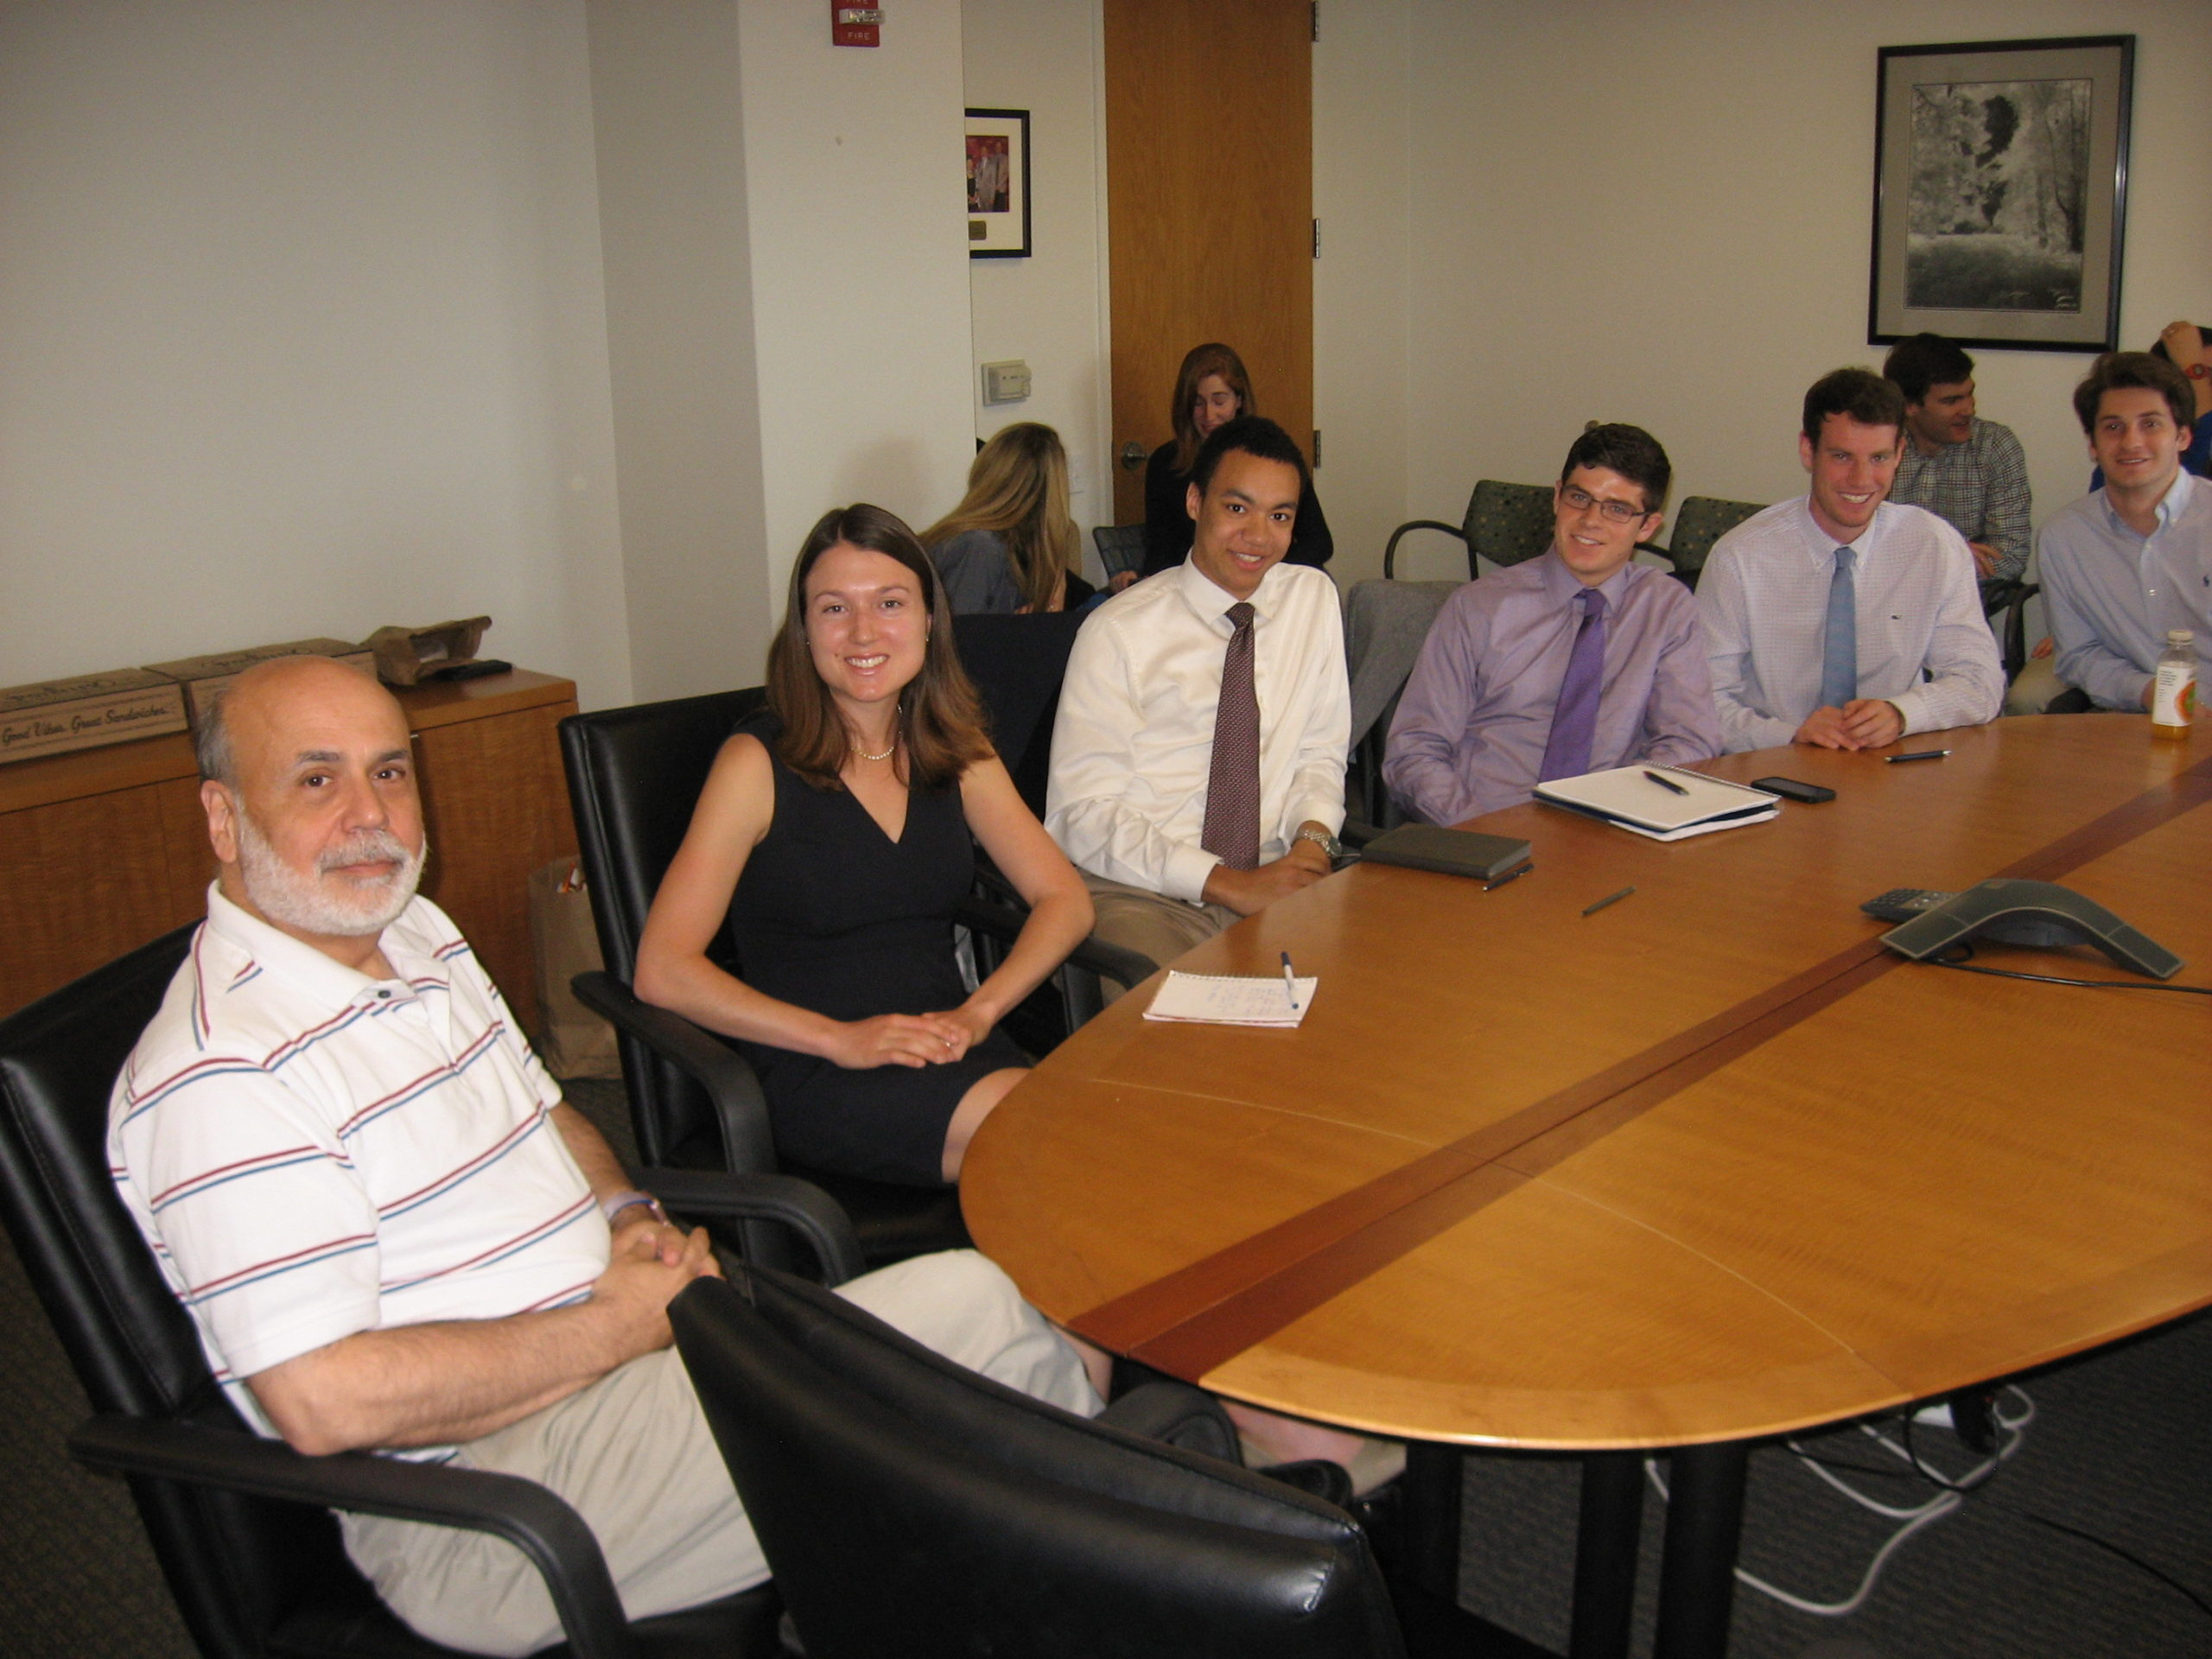 Students in Carola Binder's class on the Federal Reserve meet former Federal Reserve Chair Ben Bernanke at the Brookings Institute